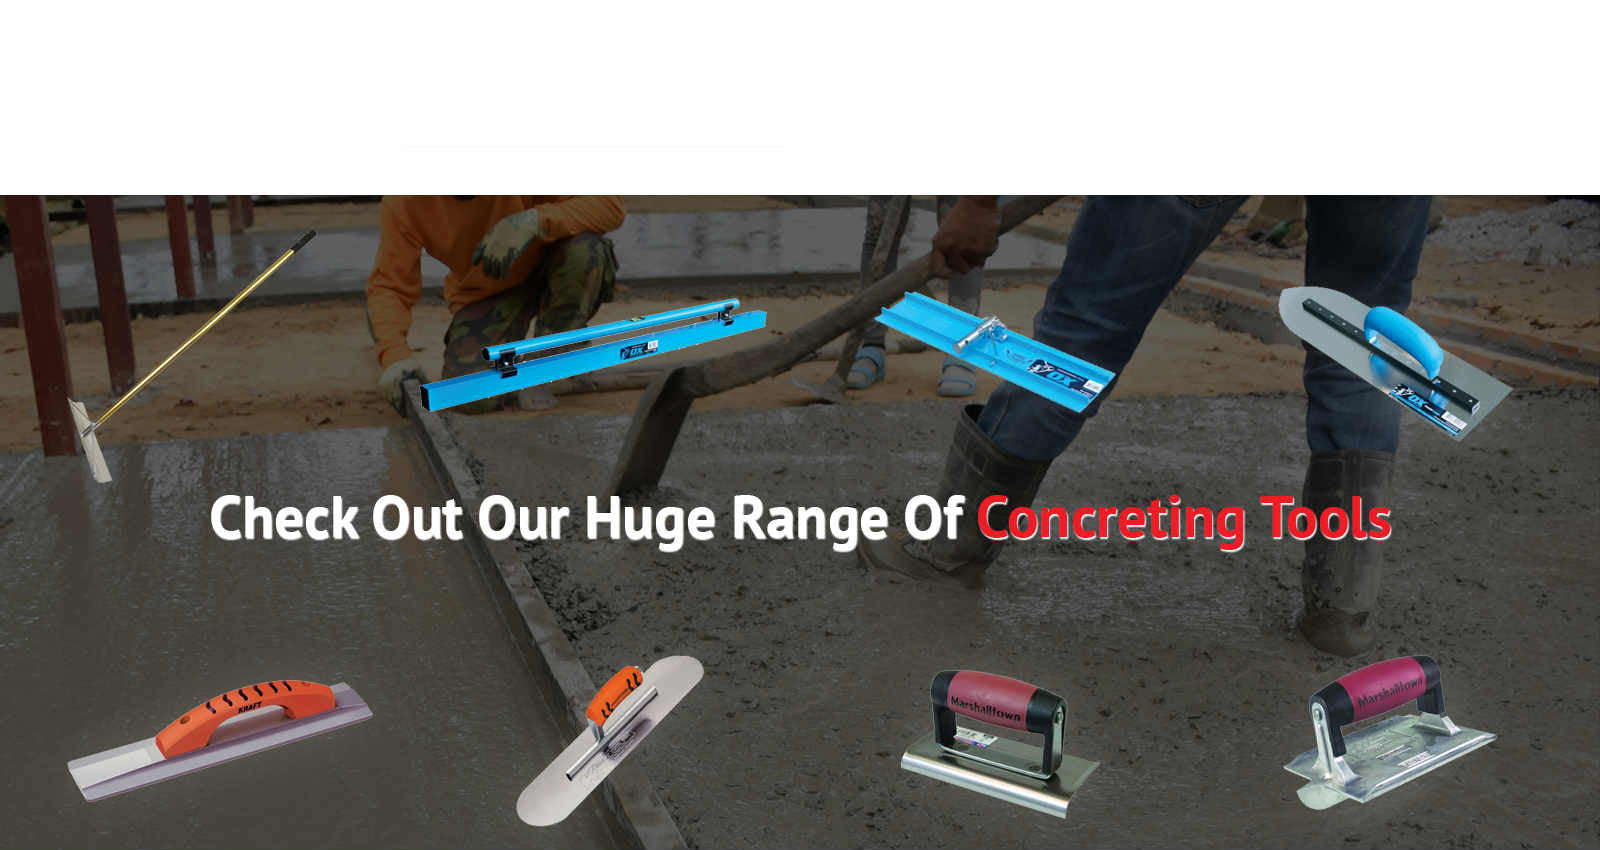 Check out our range of Concreting Tools